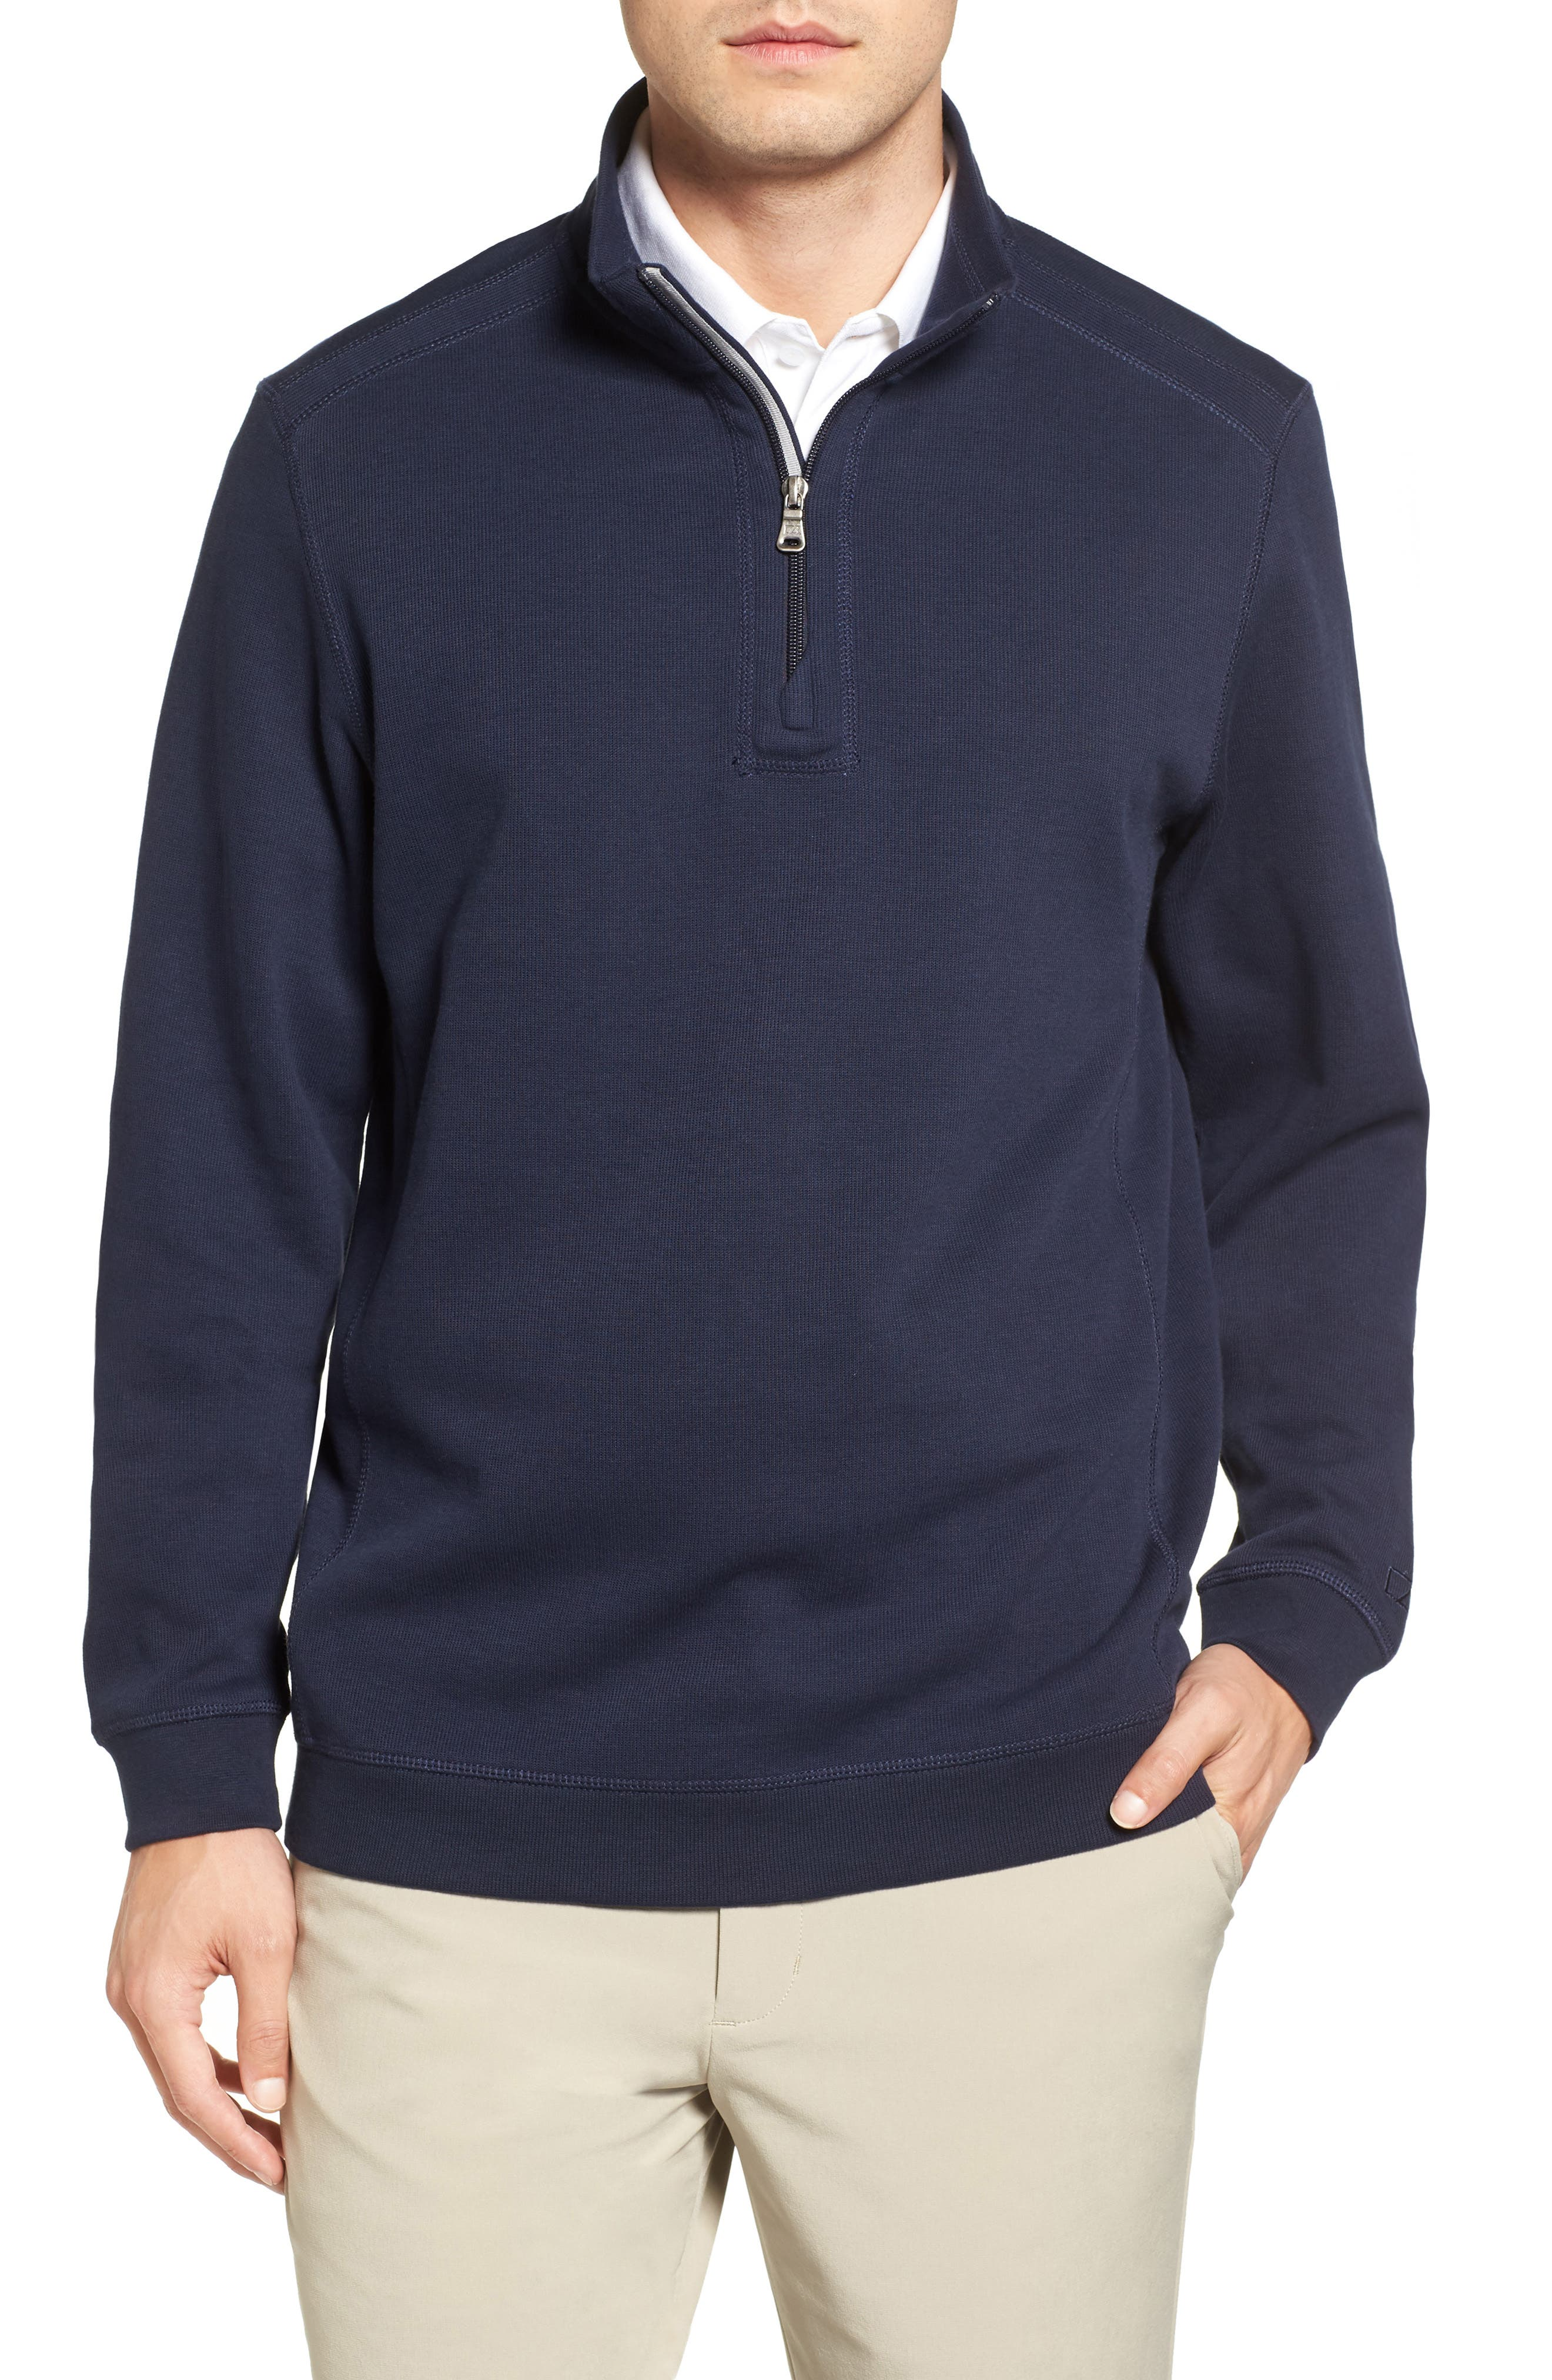 Bayview Quarter Zip Pullover,                         Main,                         color, Liberty Navy